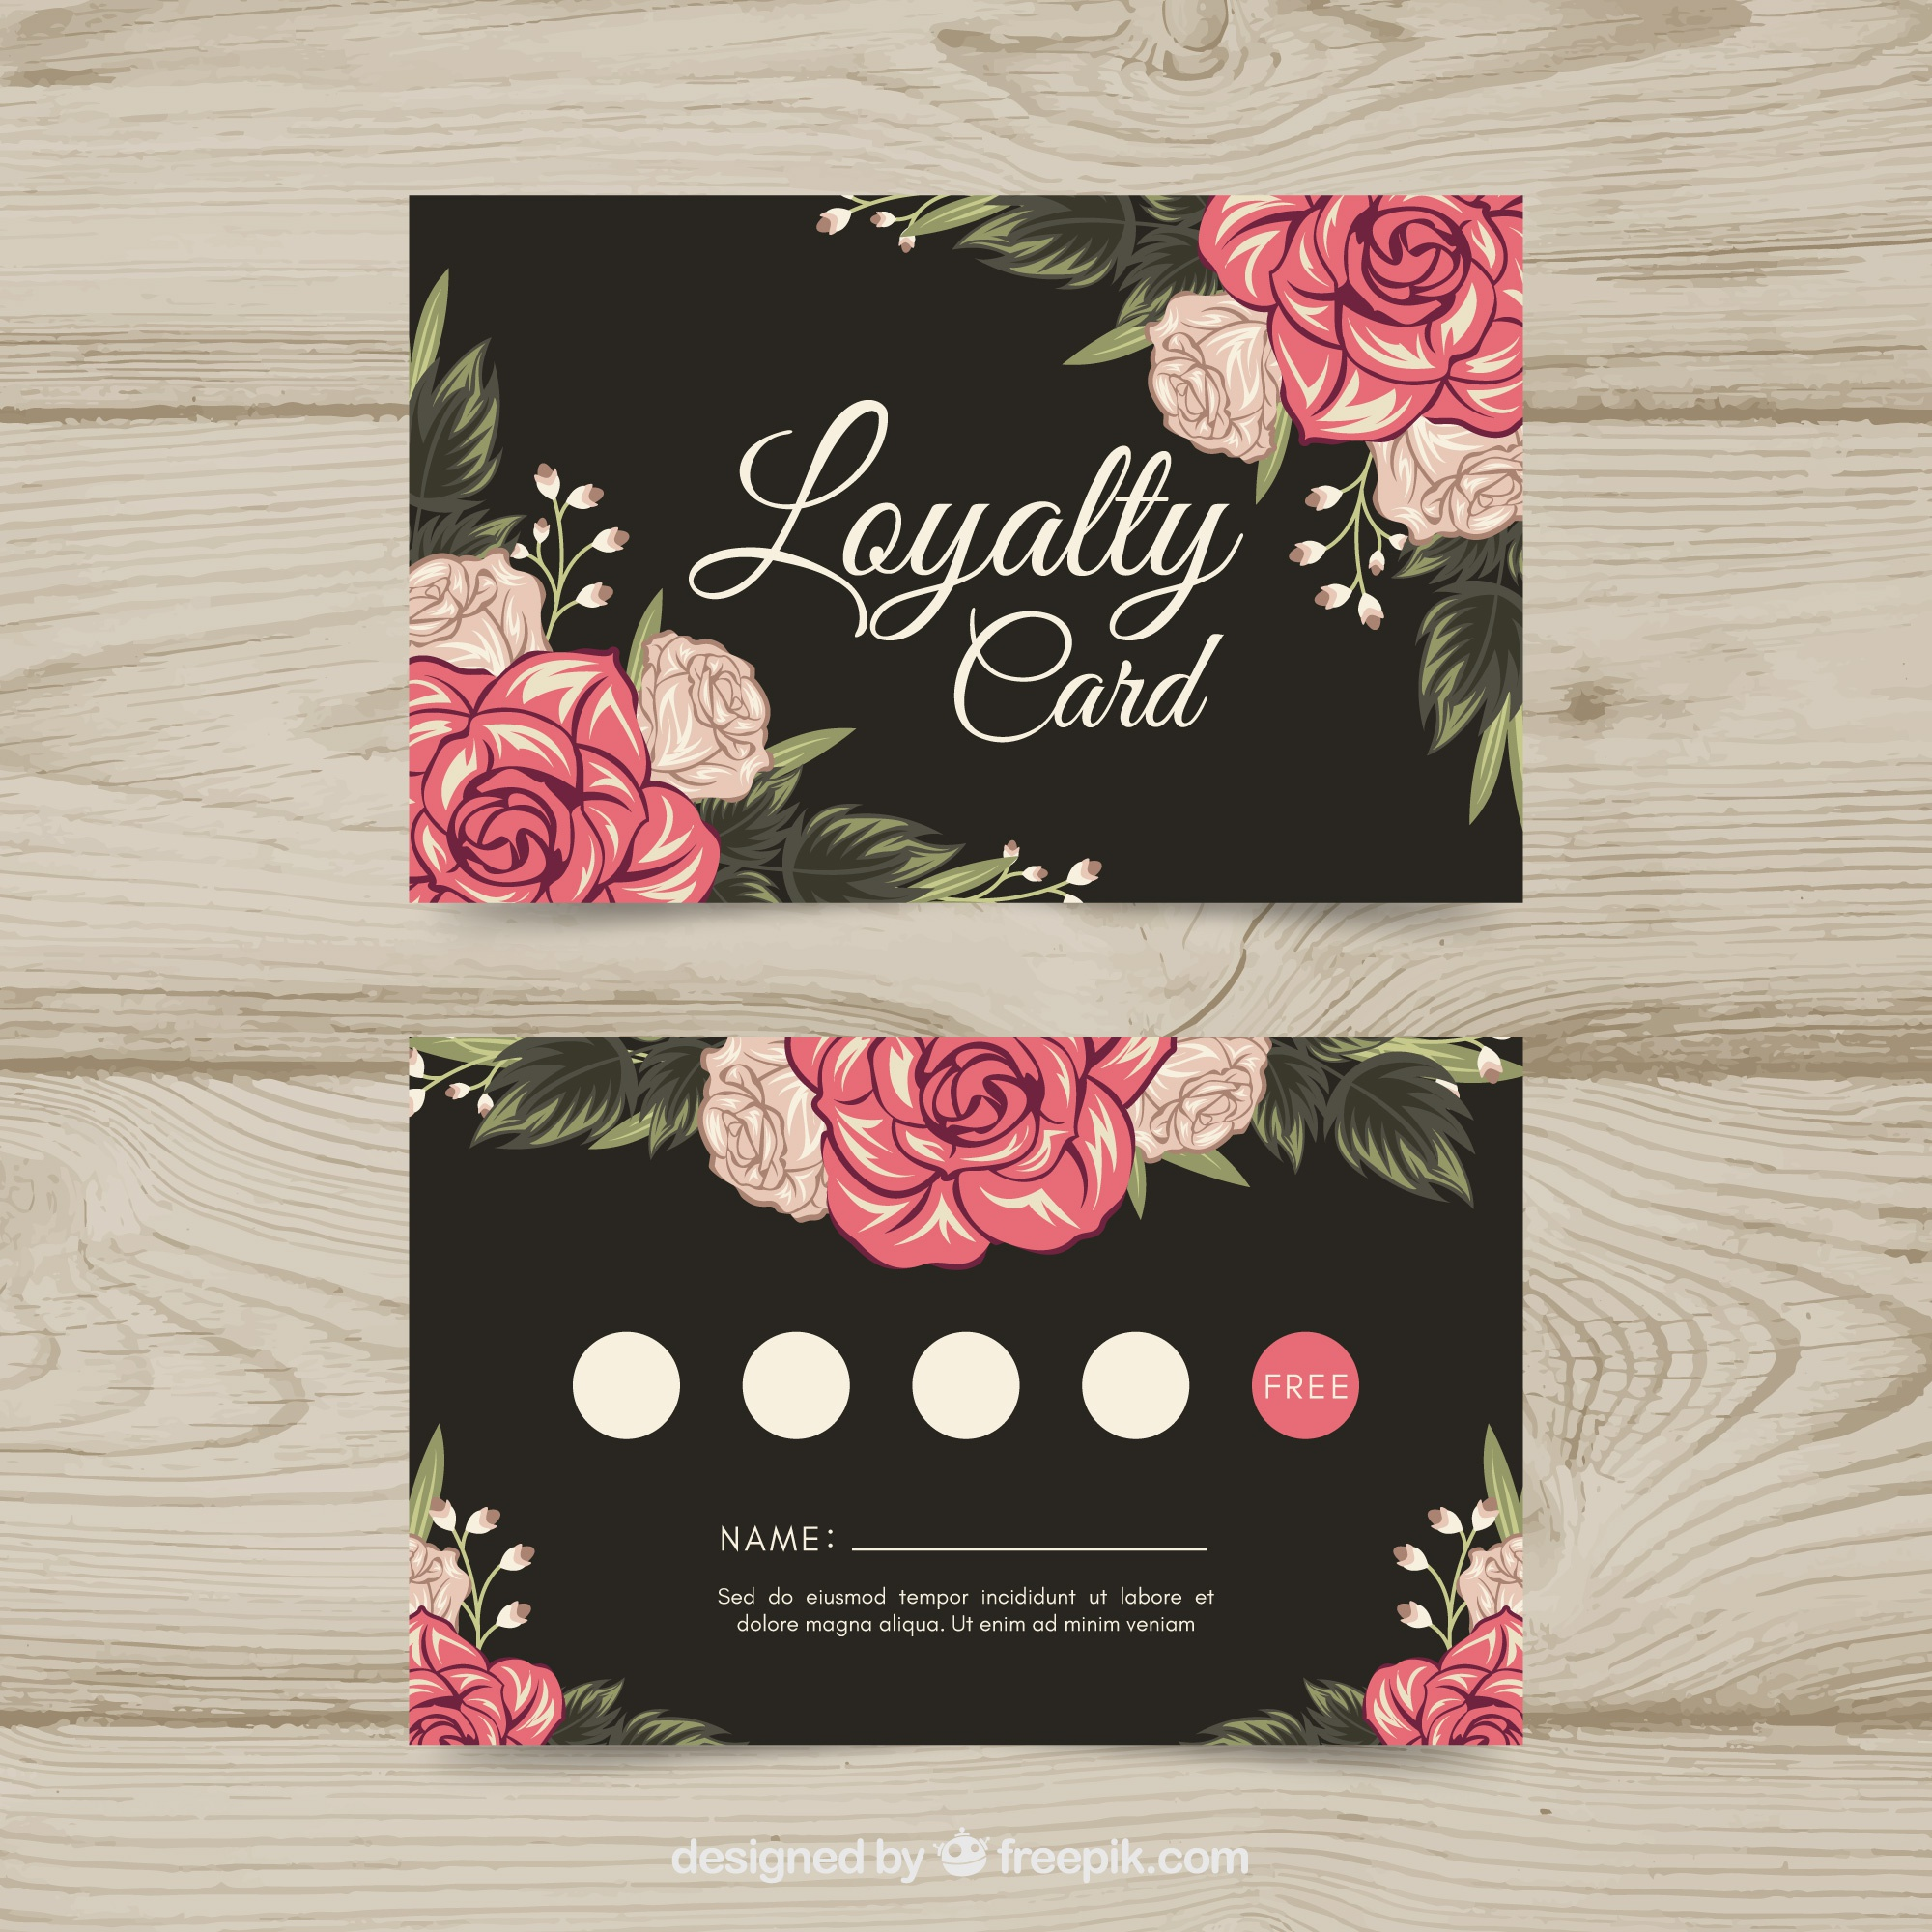 Lovely loyalty card template with floral style